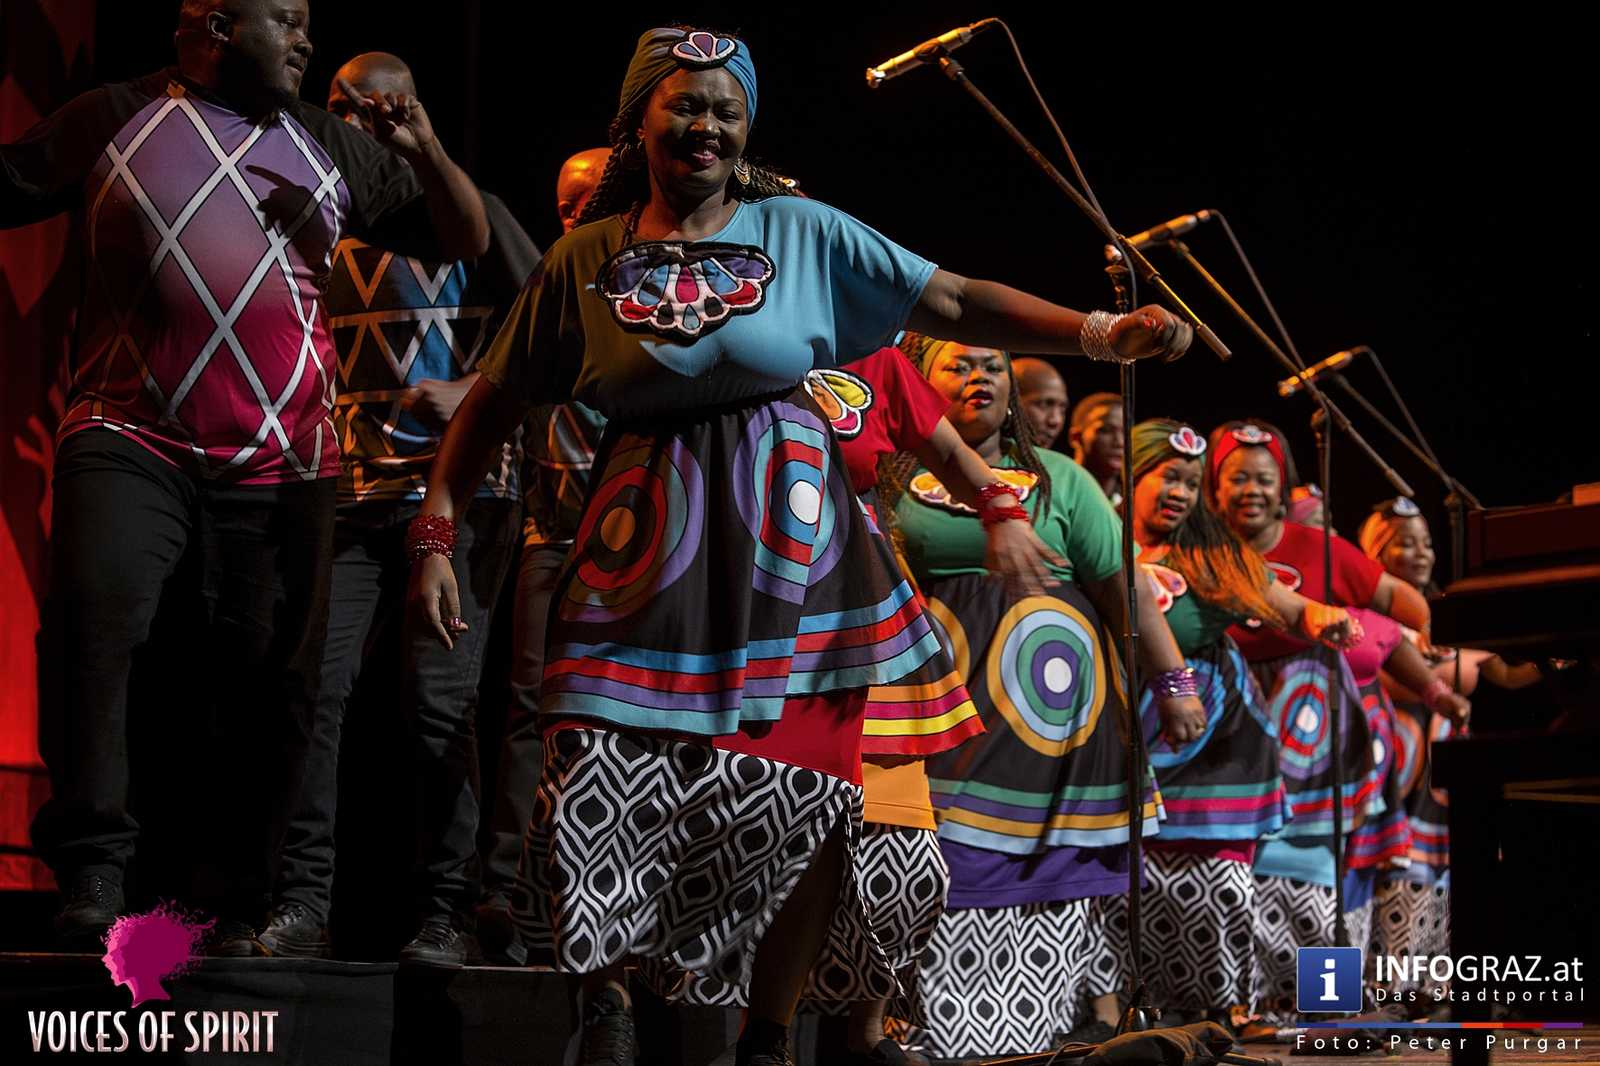 soweto gospel choir internationales chorfestival statdthalle graz voices of spirit eroeffnung festivals 2016 005